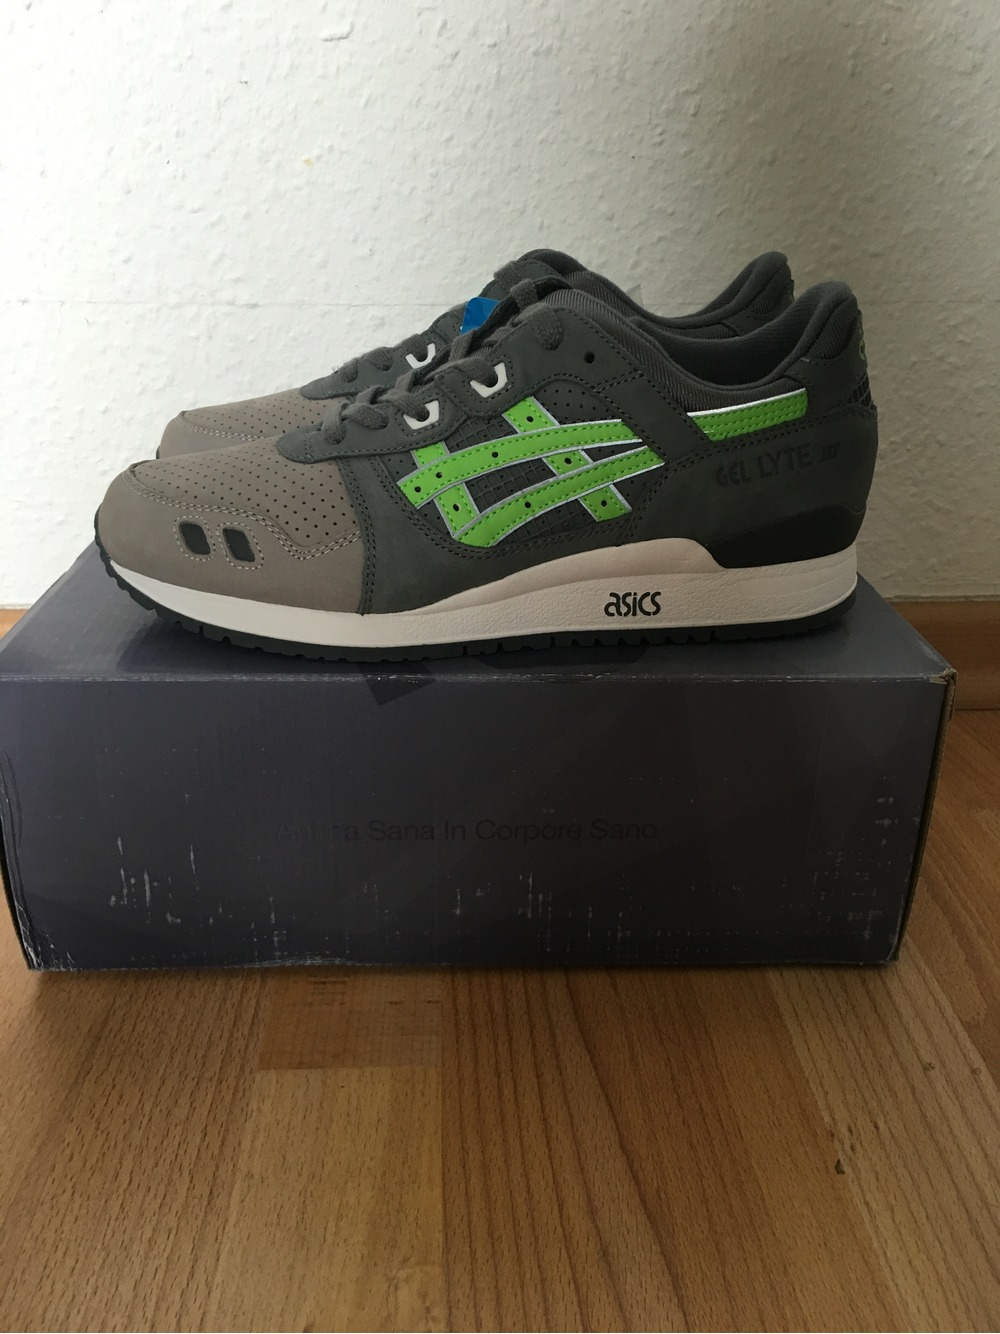 free shipping 06ffd 7eca0 Buy asics gel lyte 3 super green > Up to OFF76% Discounted